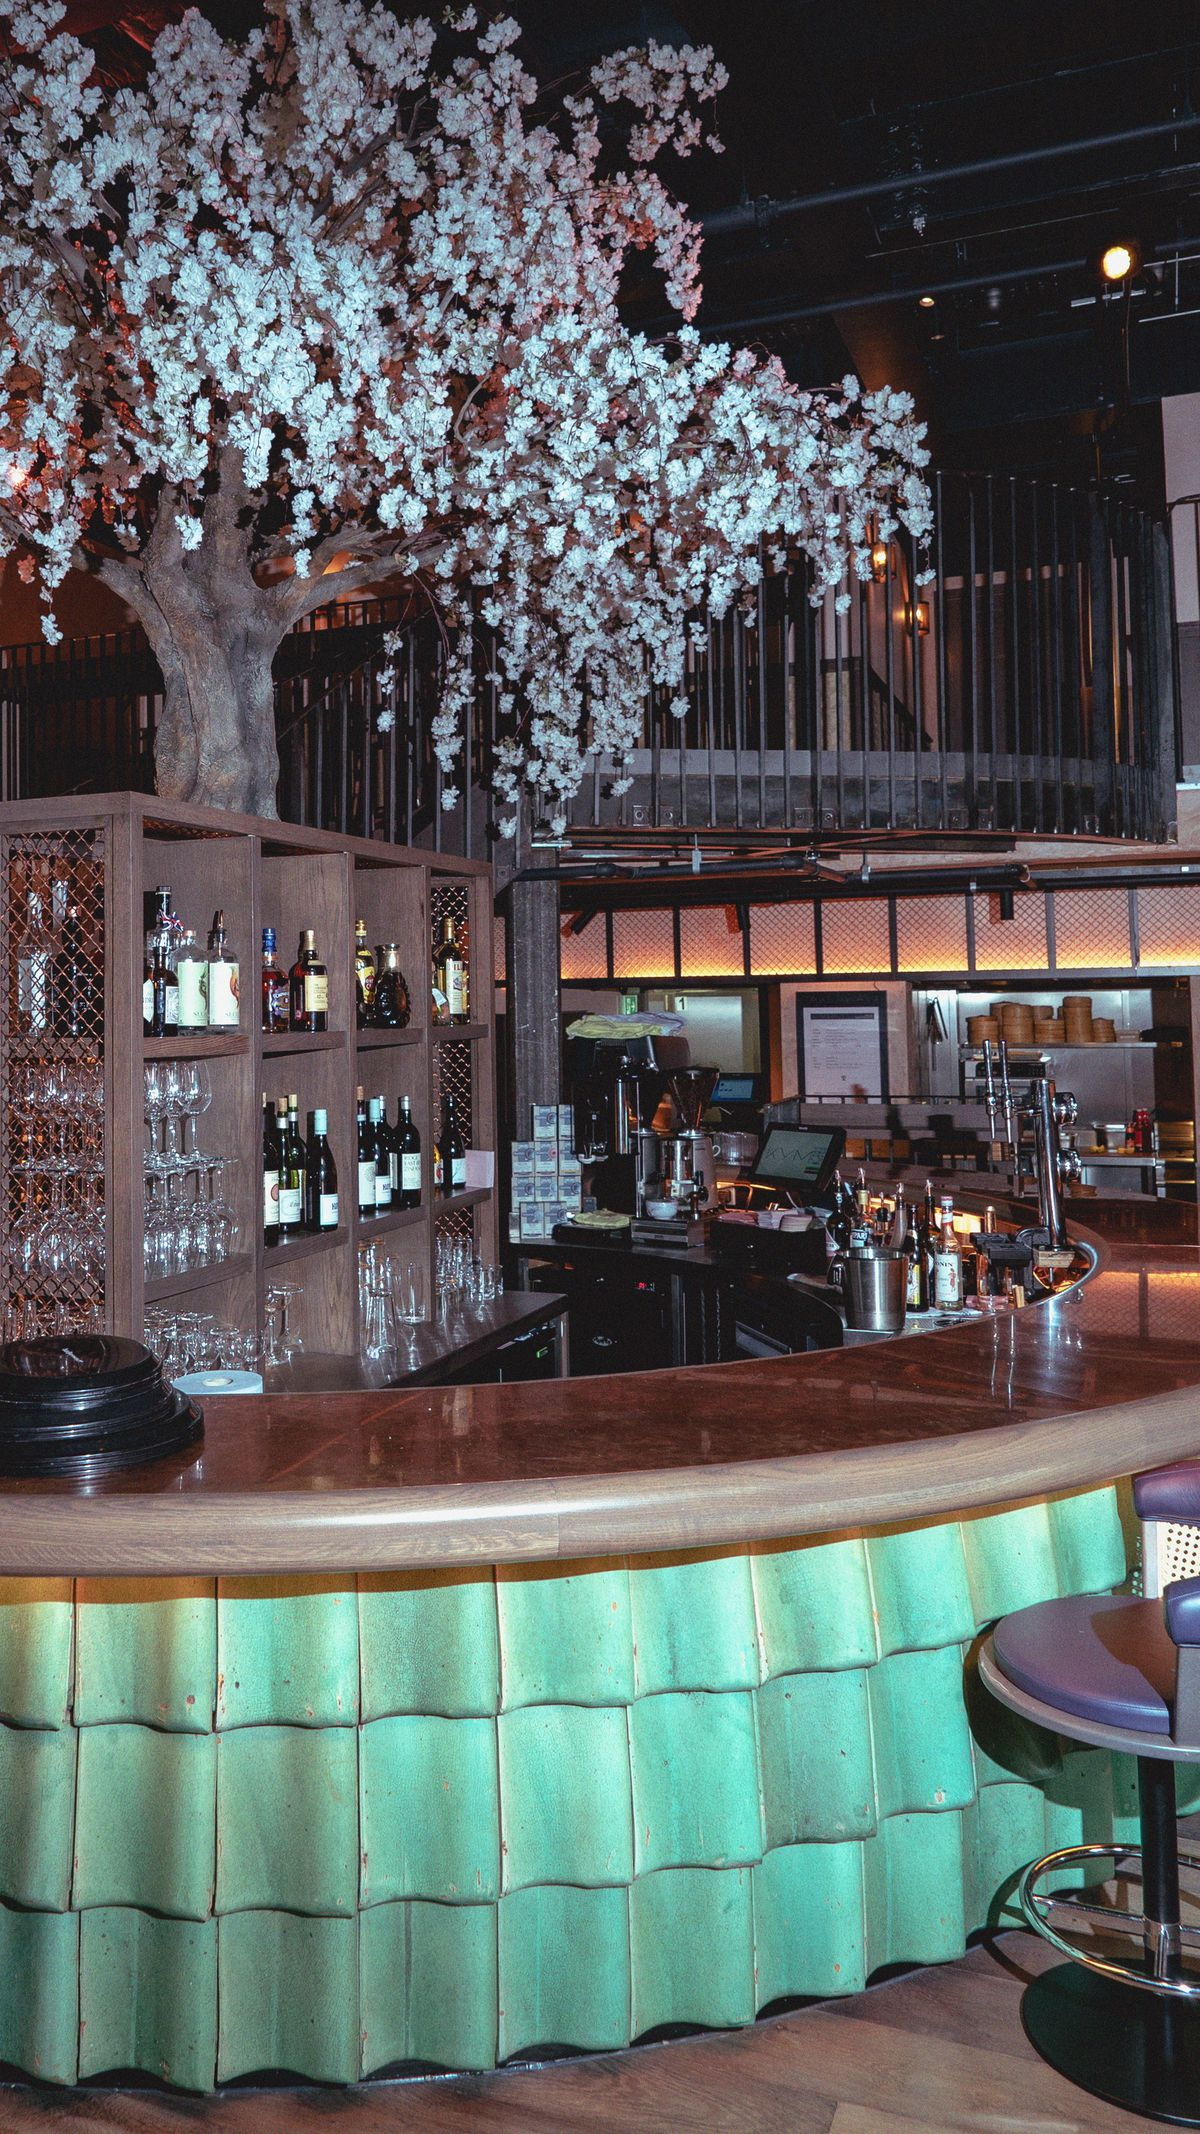 The soon to be iconic tree at Kym's in the Bloomberg Arcade restaurant development, London - the follow-up to Michelin-starred dim sum restaurant A. Wong in Victoria